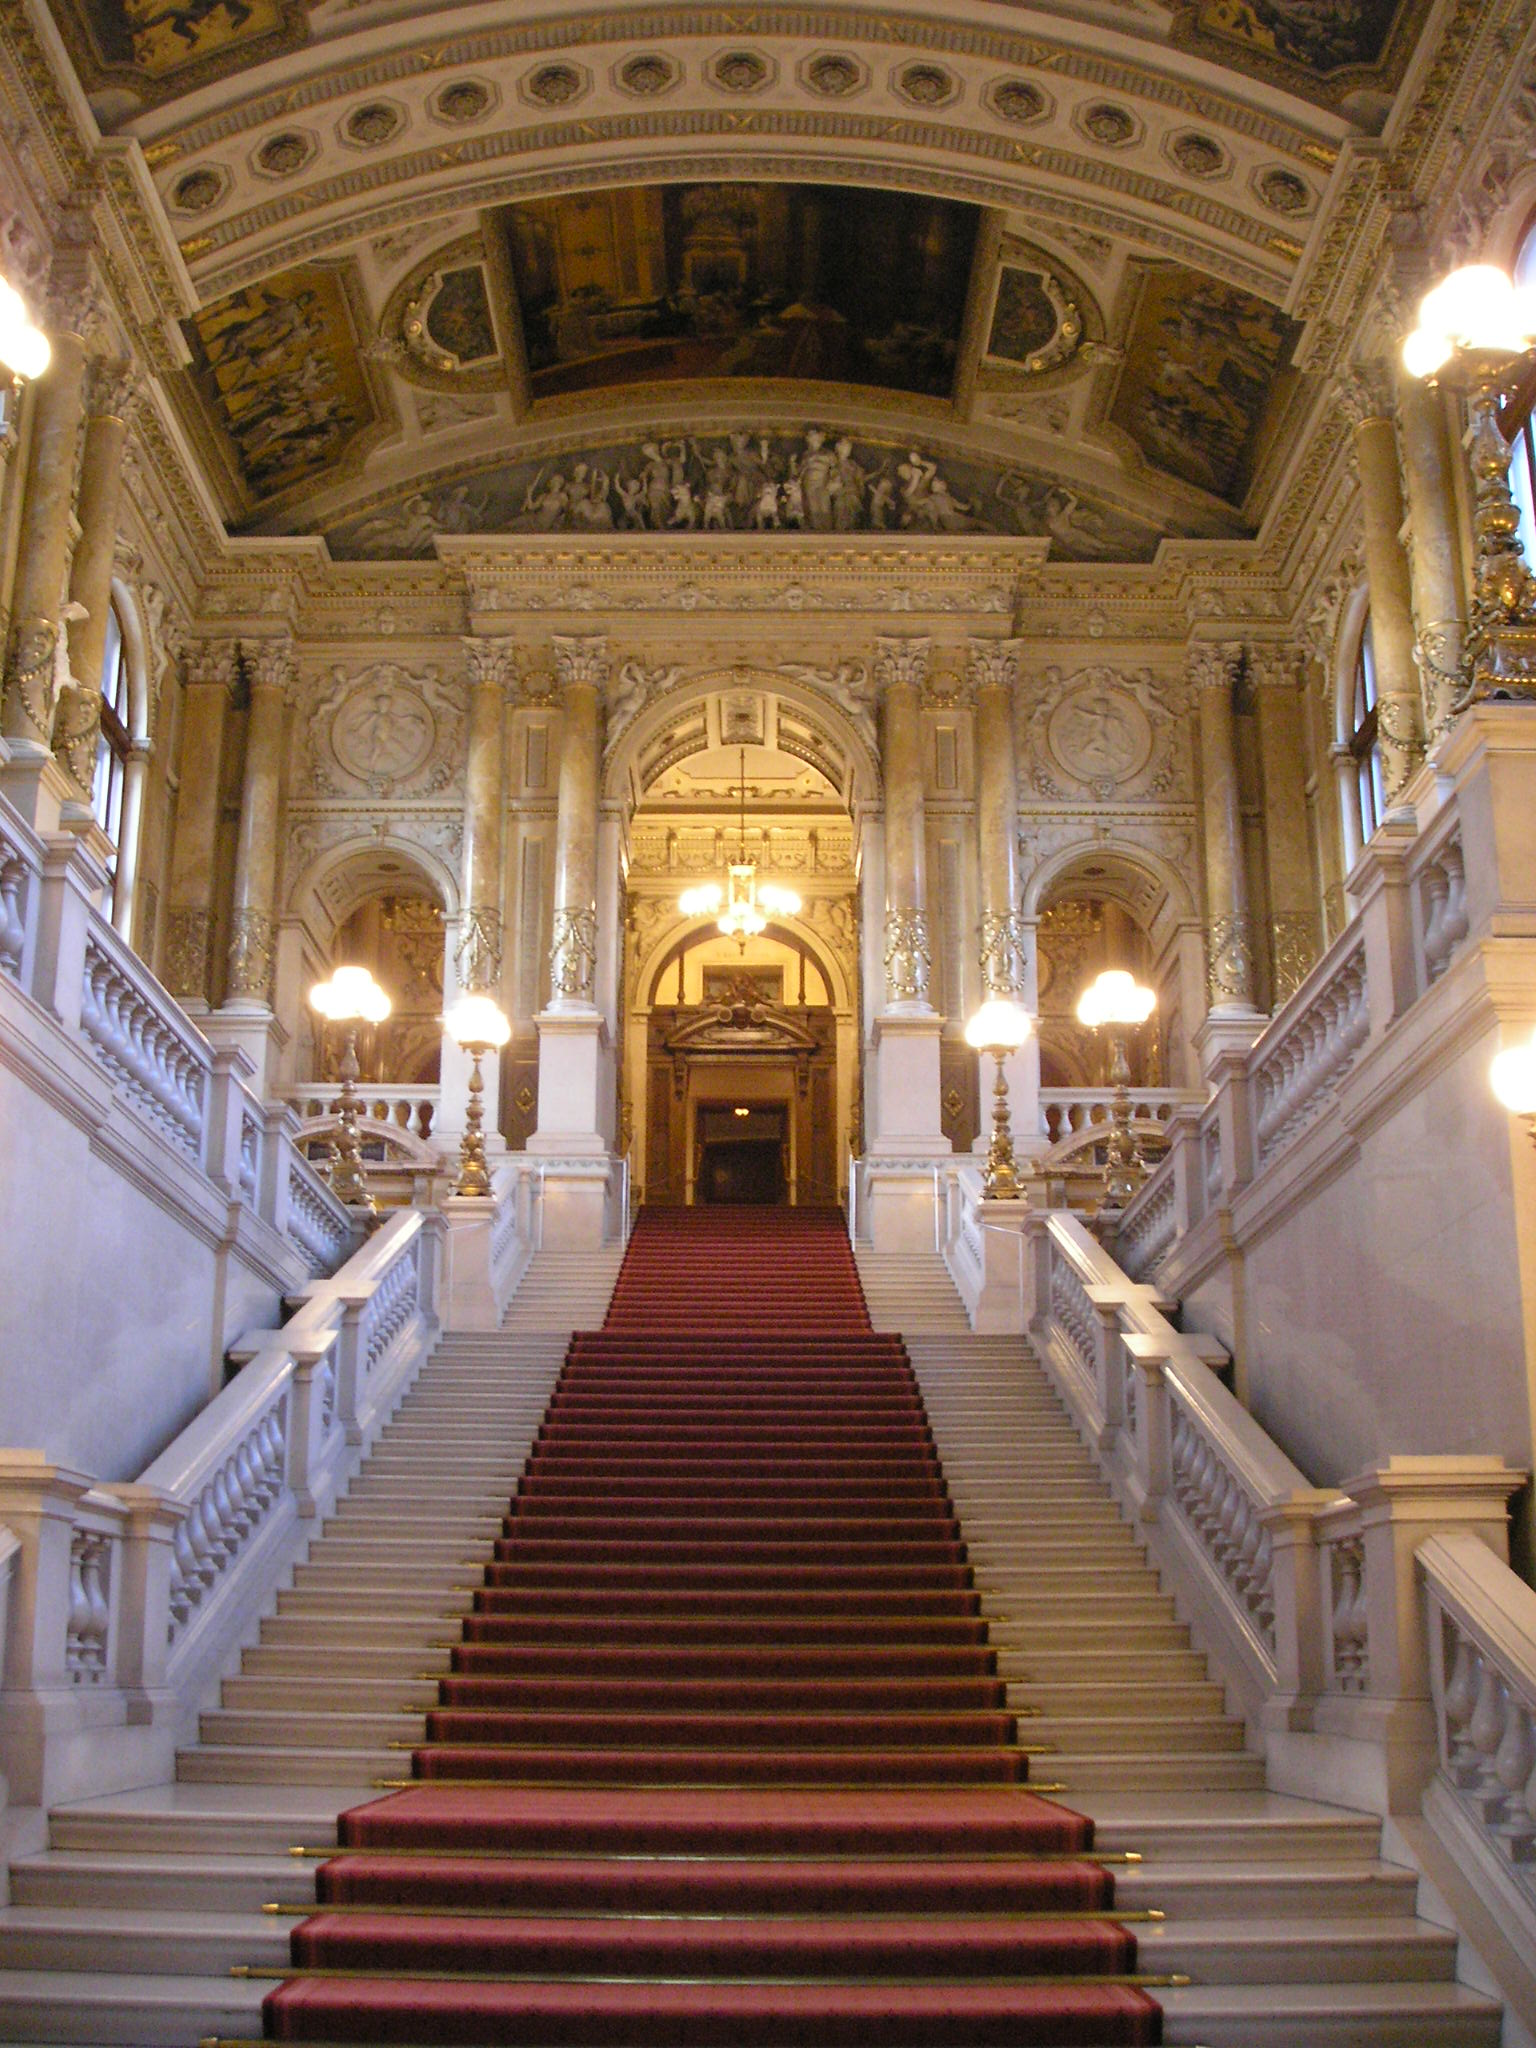 Imperial Staircase at Burgtheater in Vienna, Austria. Photo taken on September 9, 2006.